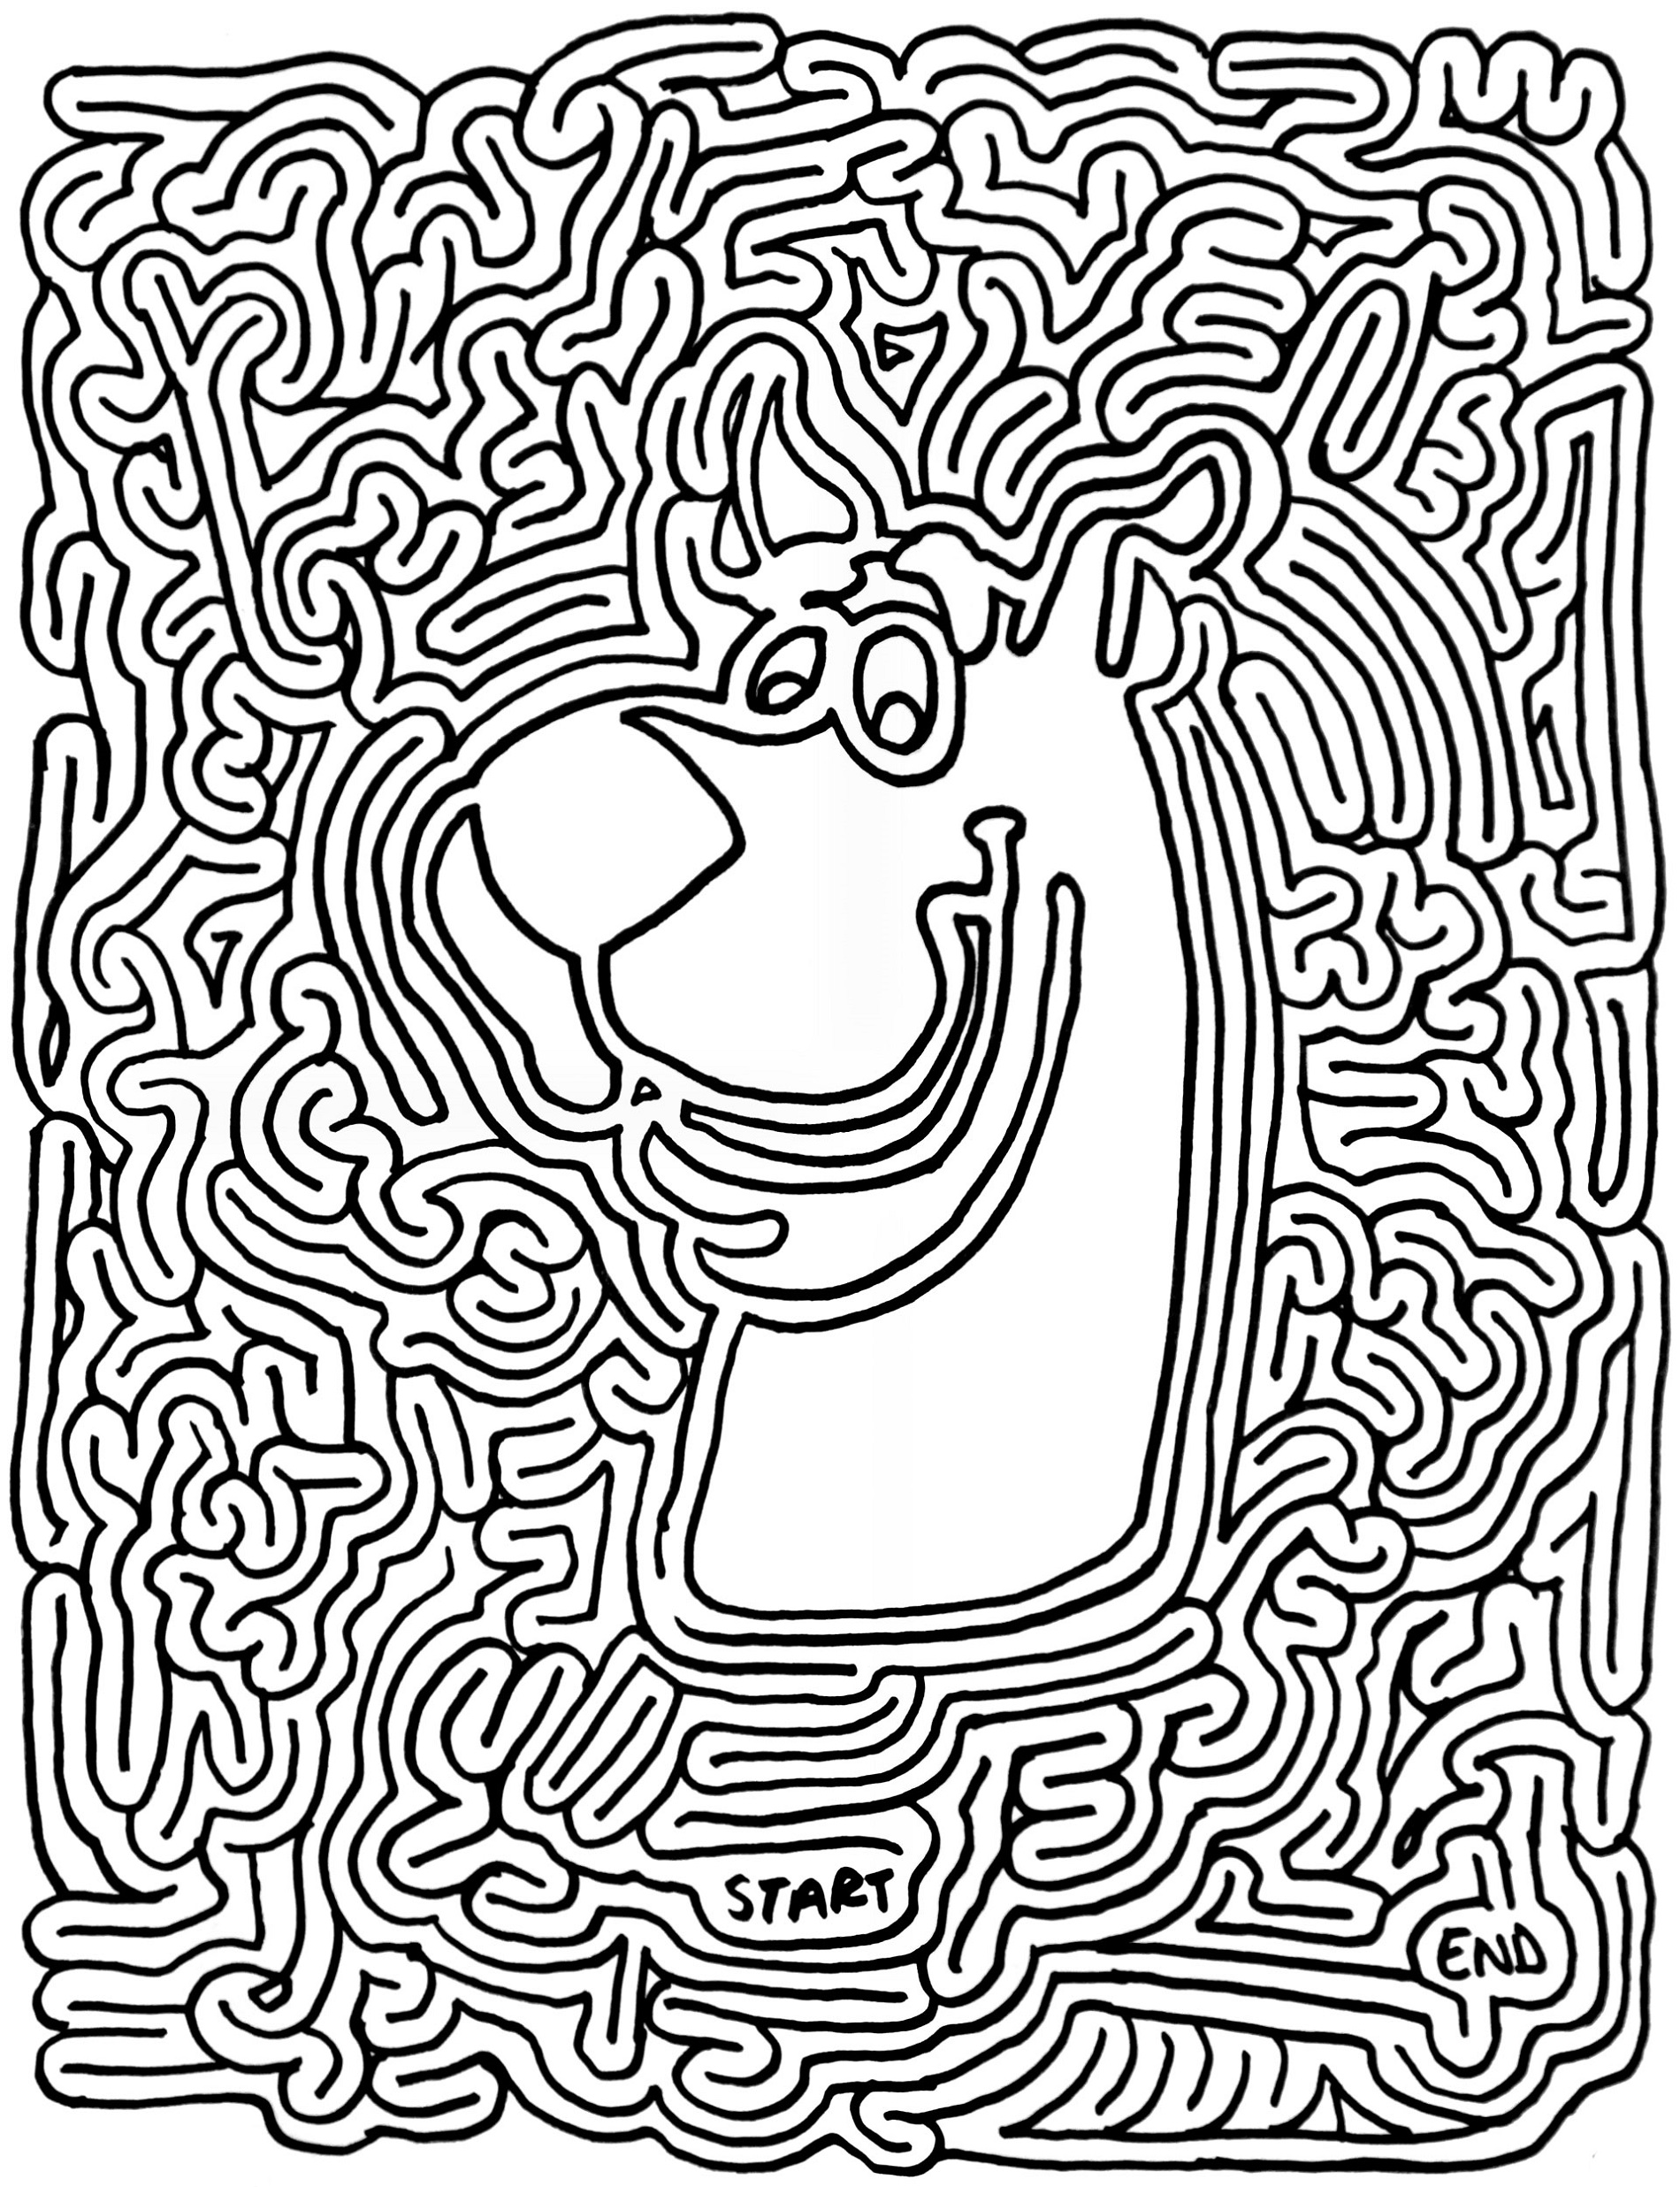 Scooby Doo Printable Mazes for Adults